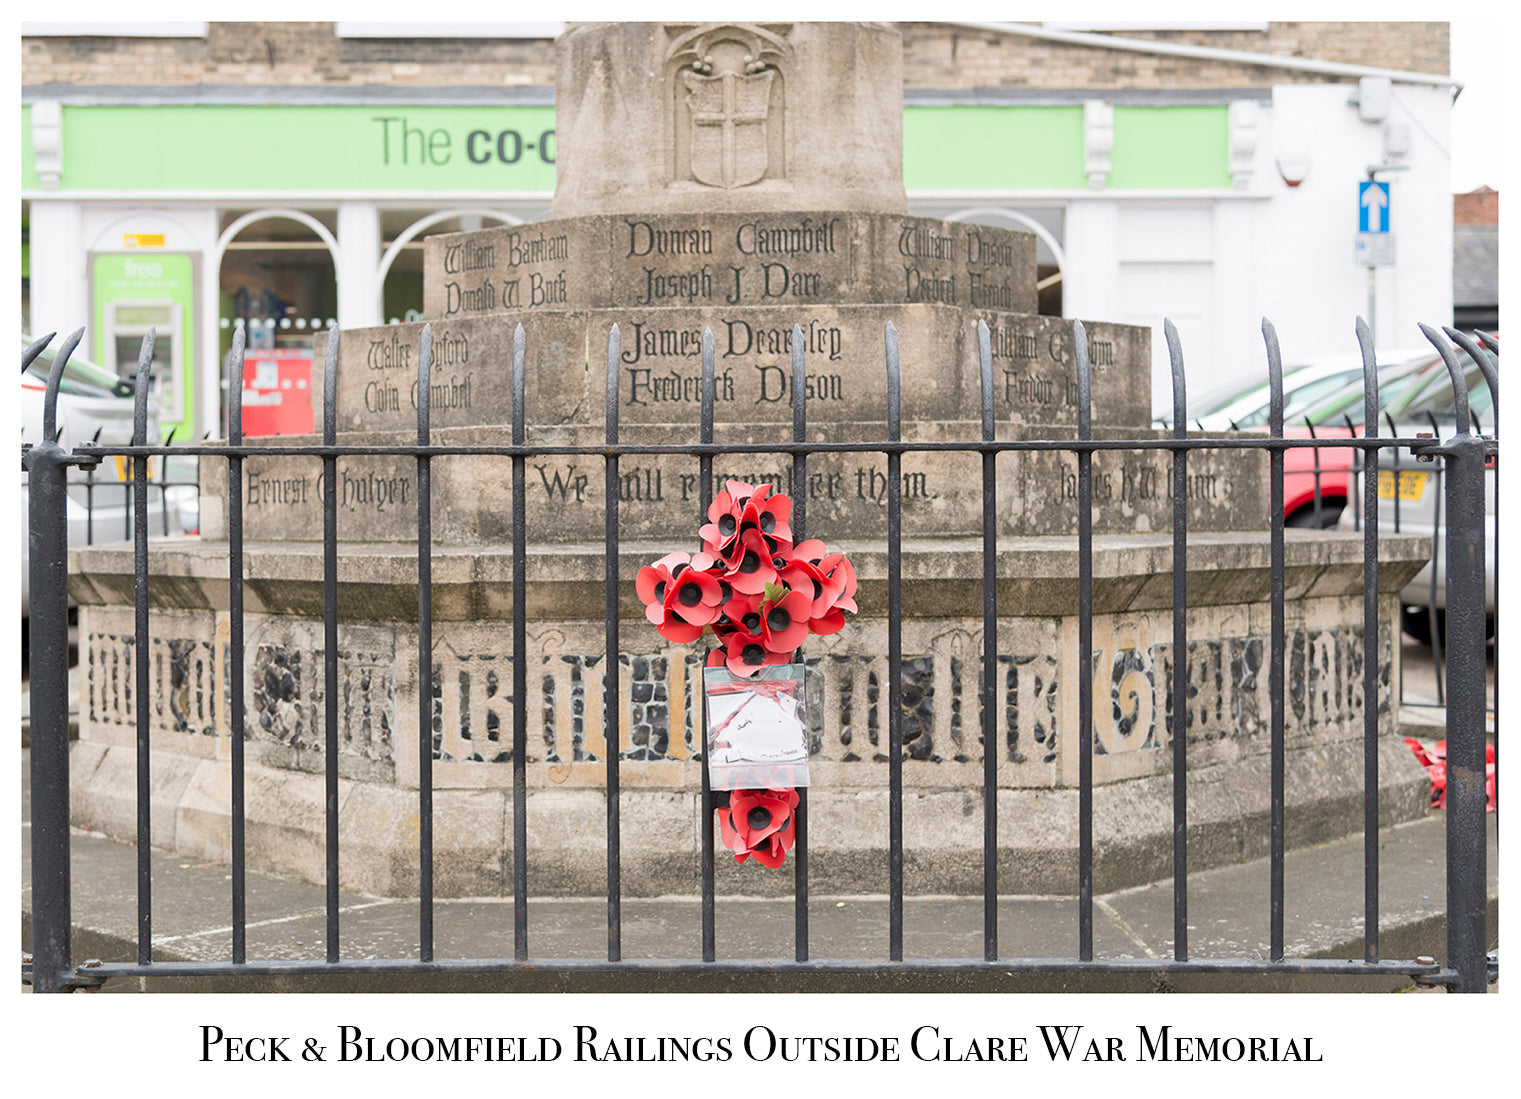 Peck and Bloomfield Railings, Clare War Memorial, Modern Day